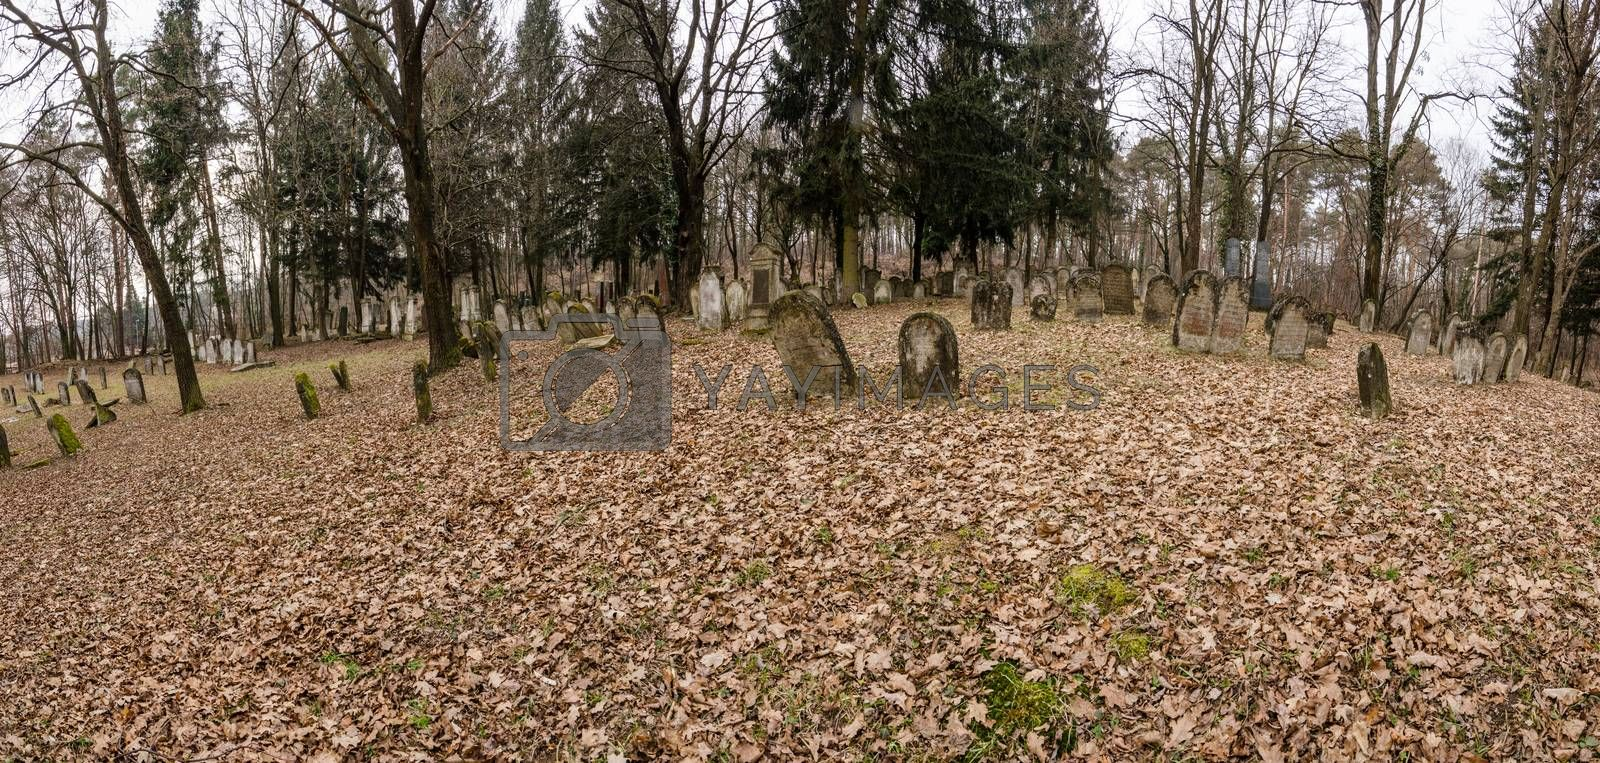 Jewish cemetery in the forest panorama view